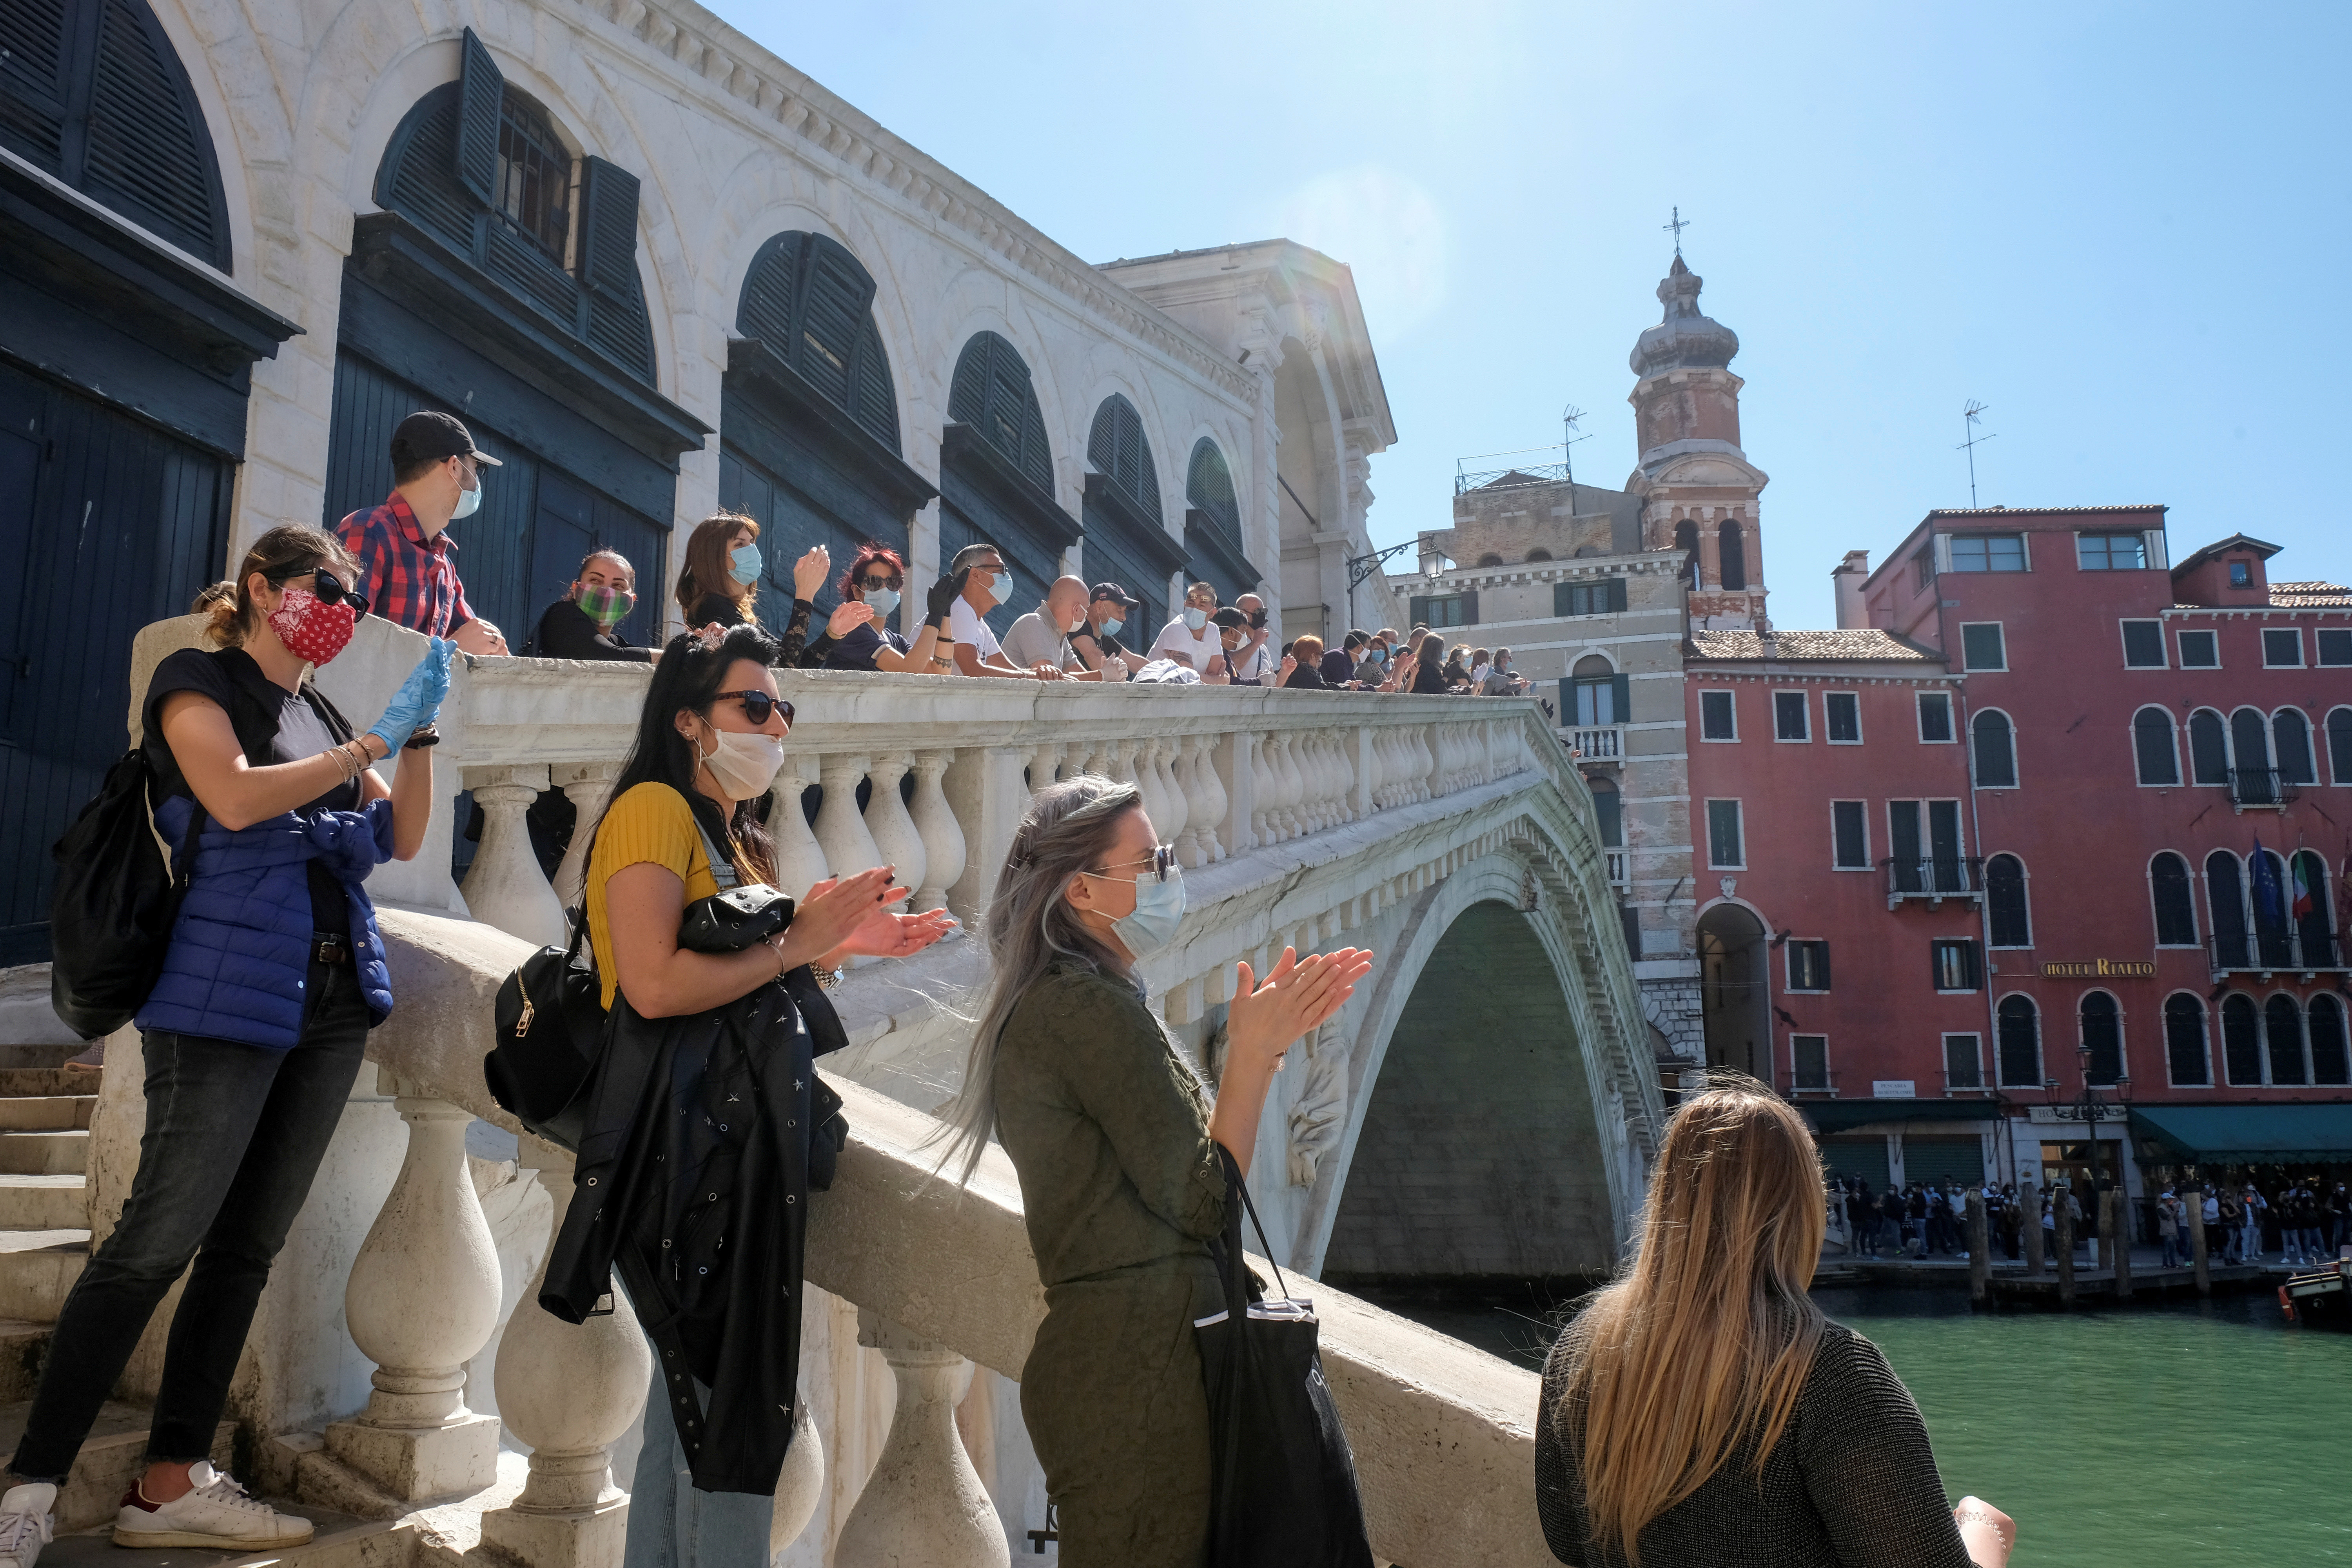 A rally organised by small business owners stops by the Rialto bridge to commemorate the health care workers who died amid the outbreak, as Italy begins a staged end to a nationwide lockdown due to a spread of the coronavirus disease (COVID-19), in Venice, Italy, May 4, 2020. REUTERS/Manuel Silvestri     TPX IMAGES OF THE DAY - RC2MHG9PDEU5